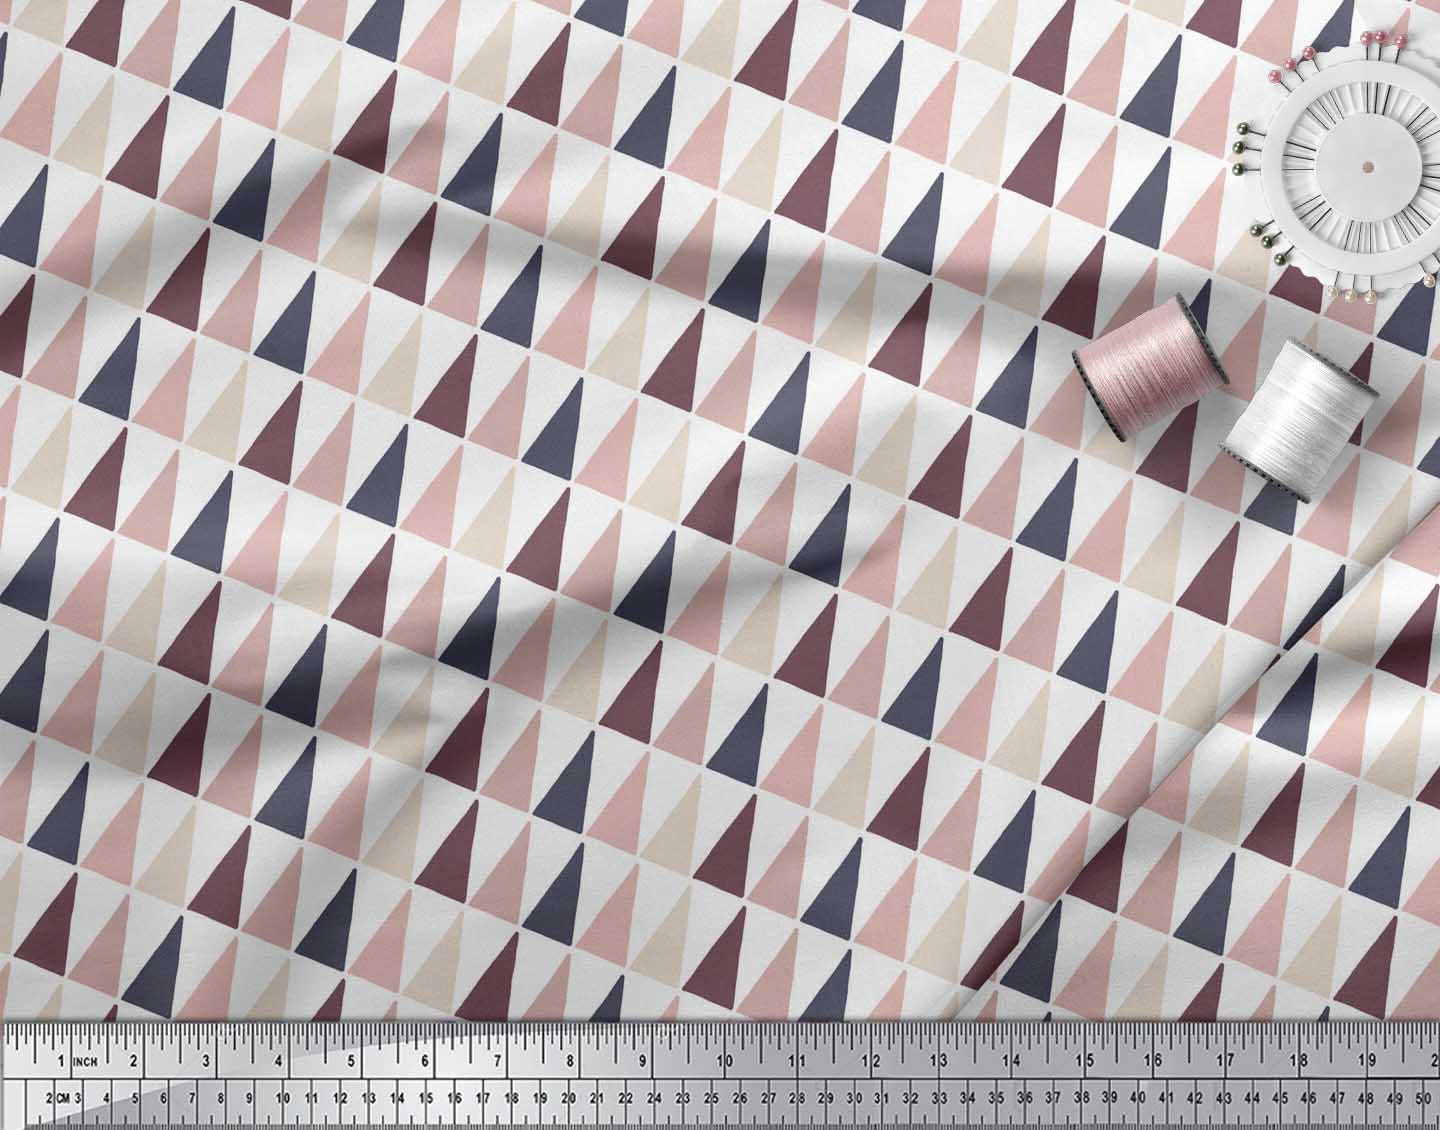 Soimoi-White-Cotton-Poplin-Fabric-Triangle-Geometric-Print-Fabric-cHo thumbnail 4